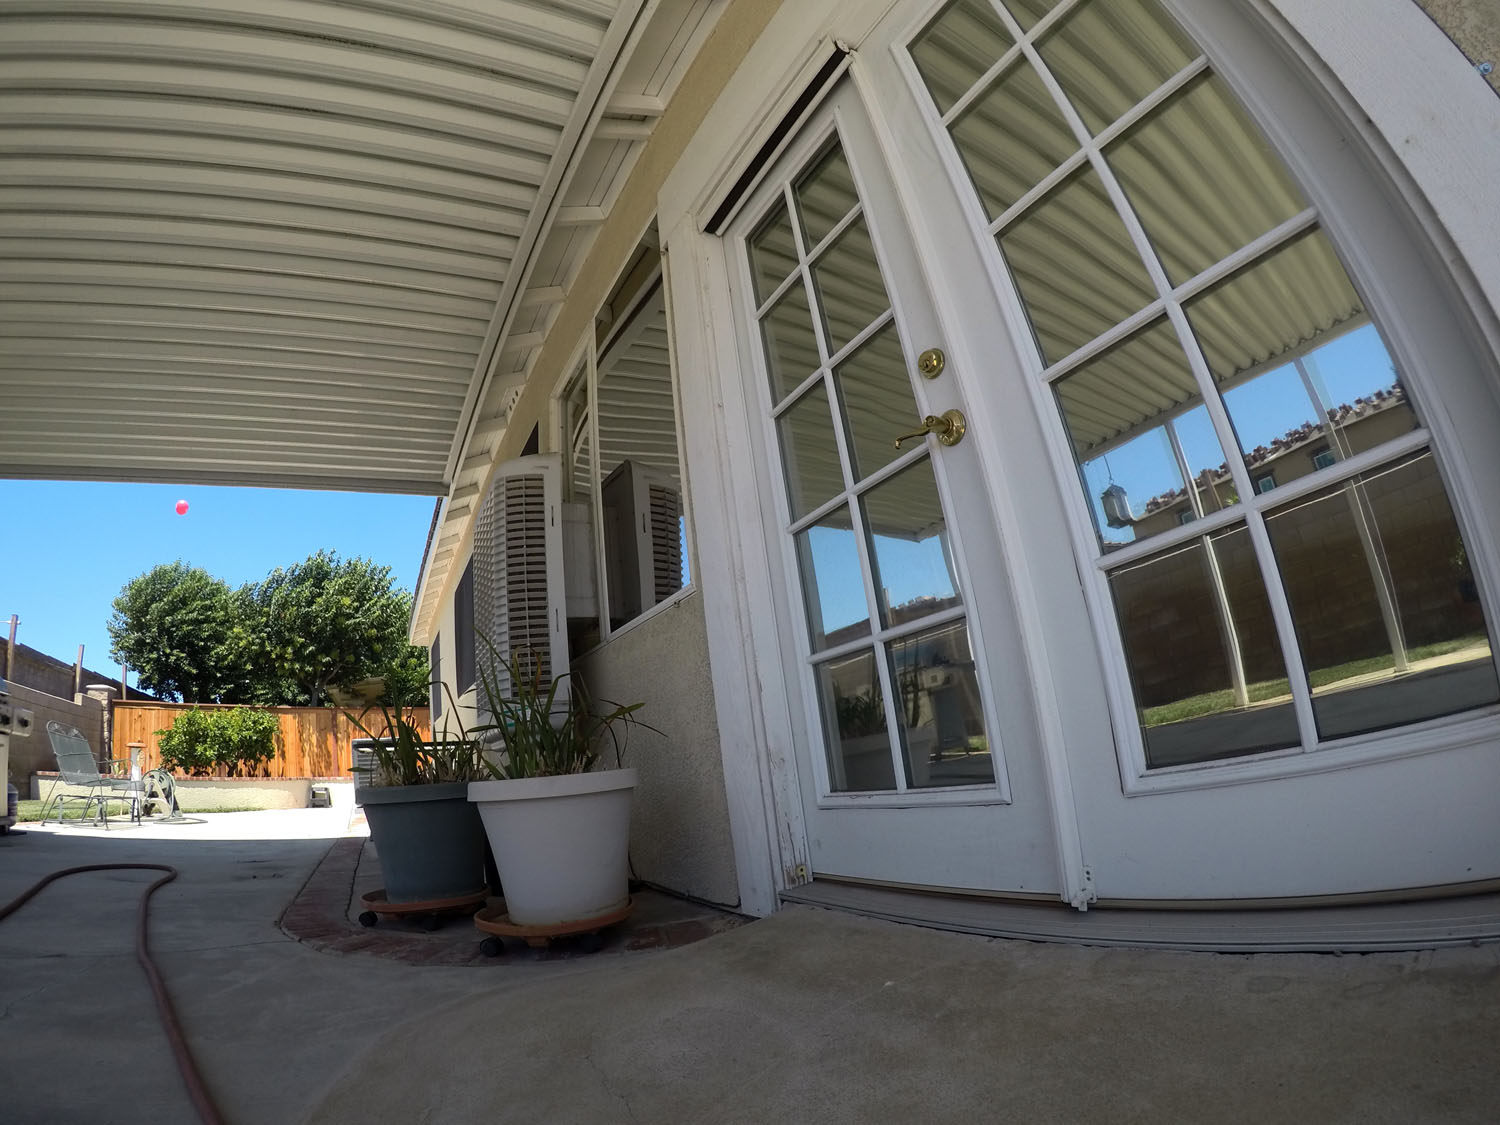 Commercial & Residential Window Tint Solutions